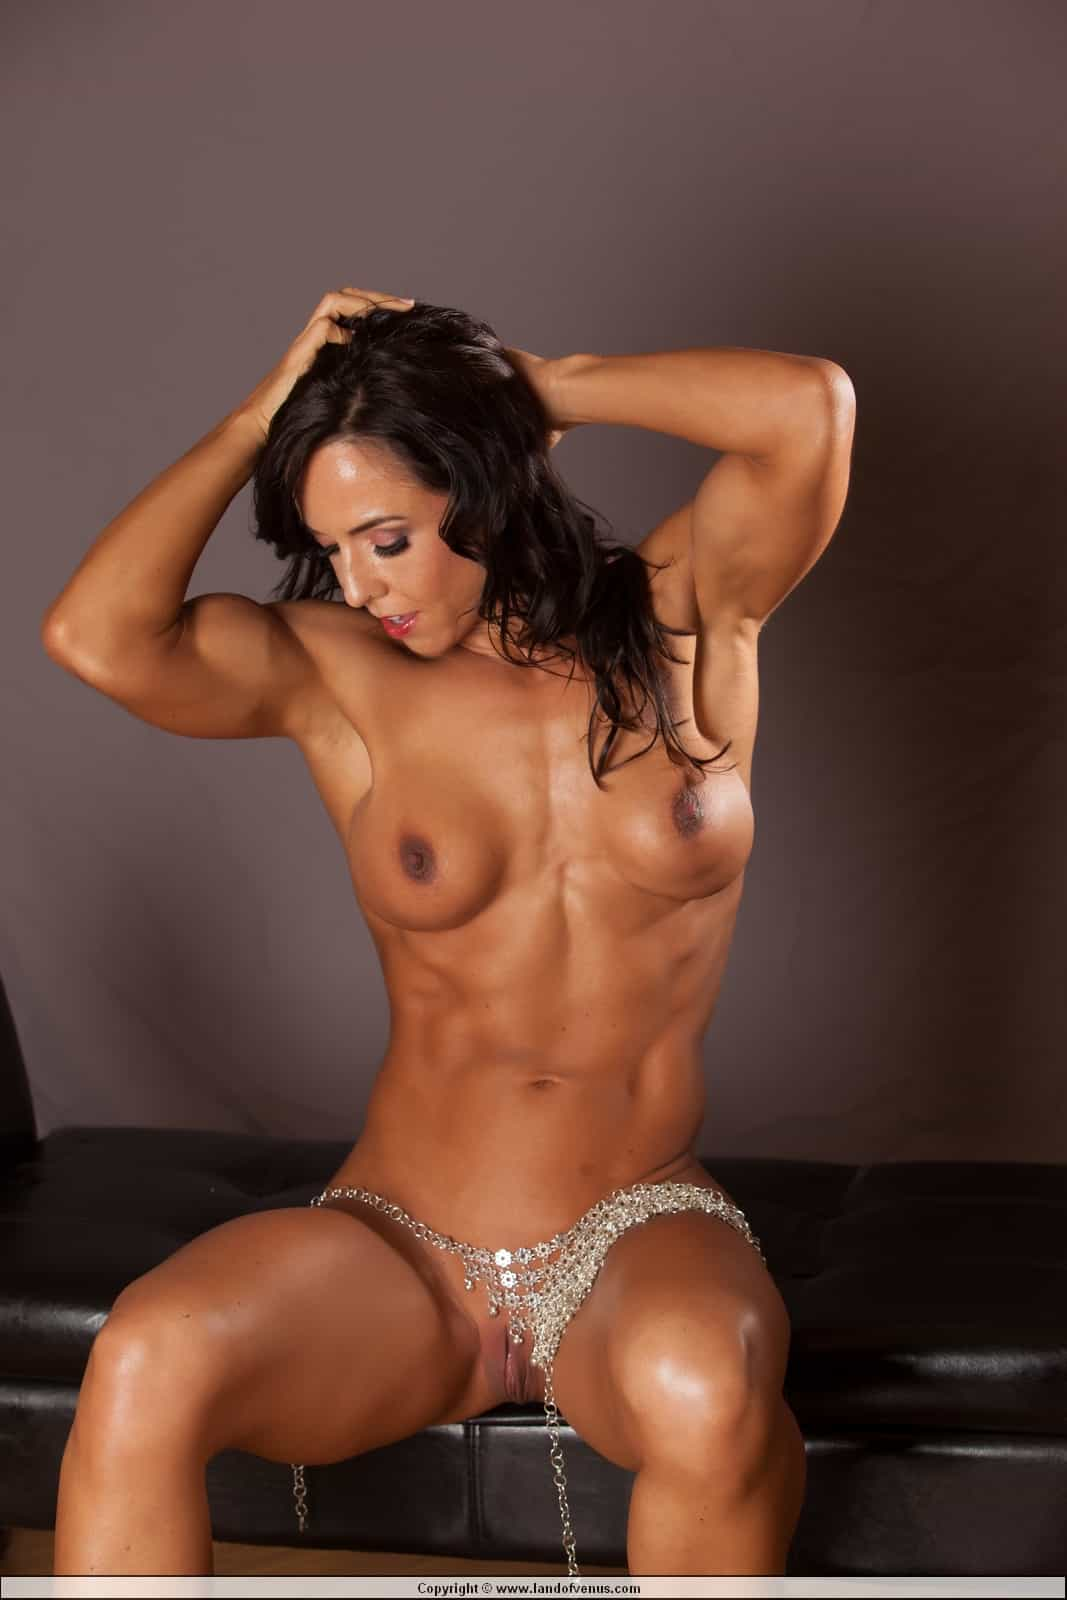 Nude female body builder pics